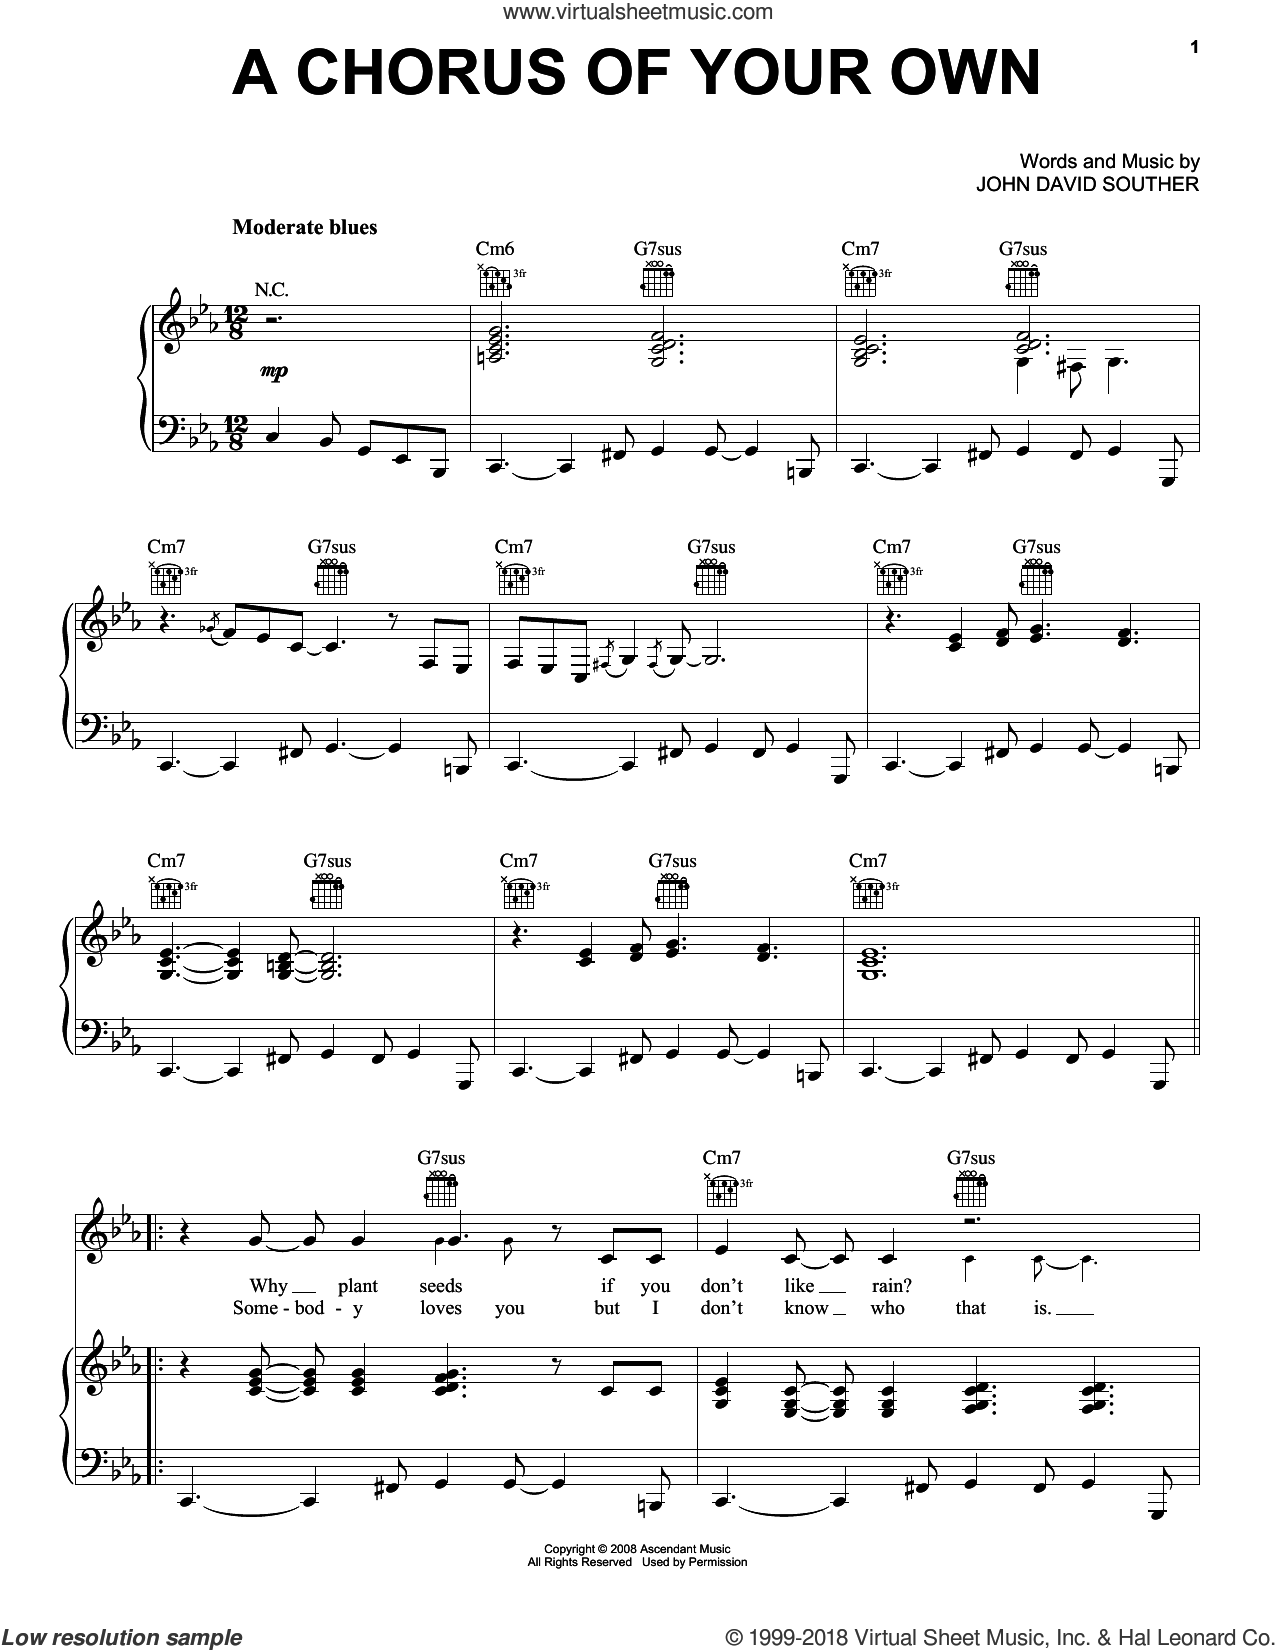 A Chorus Of Your Own sheet music for voice, piano or guitar by John David Souther